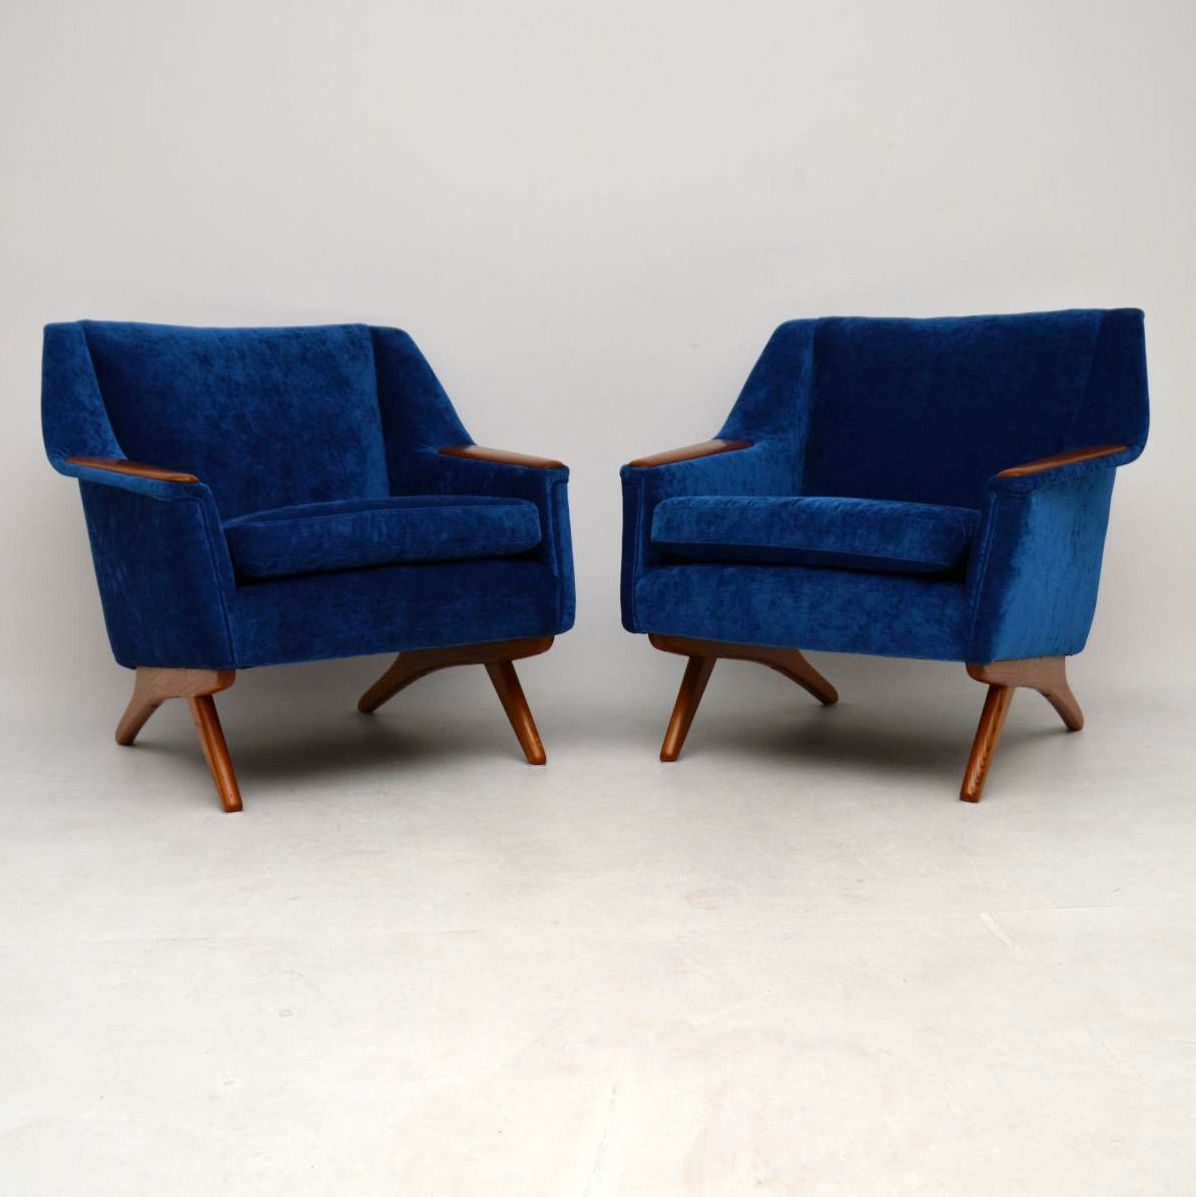 1960's Pair of Vintage Armchairs by Illum Wikkelso for Westnofa